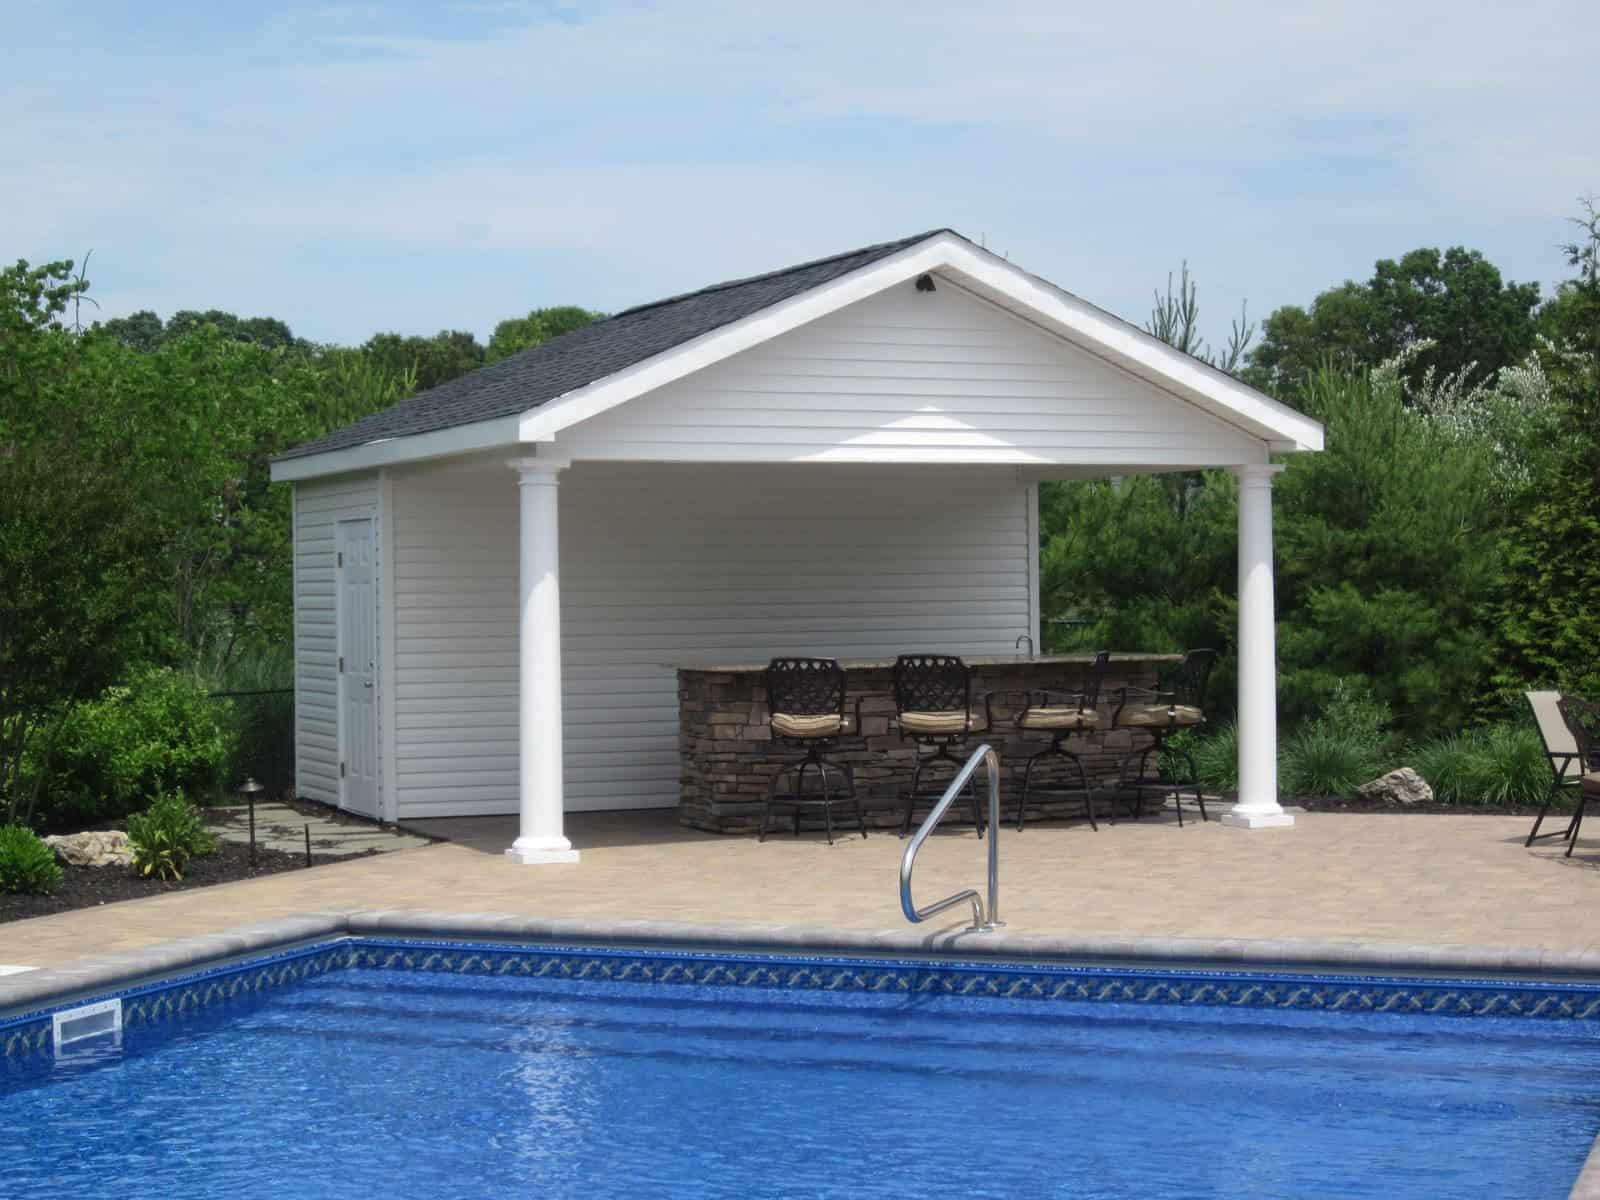 Pool House Cabana Plans: Cabanas & Pool Houses Long Island